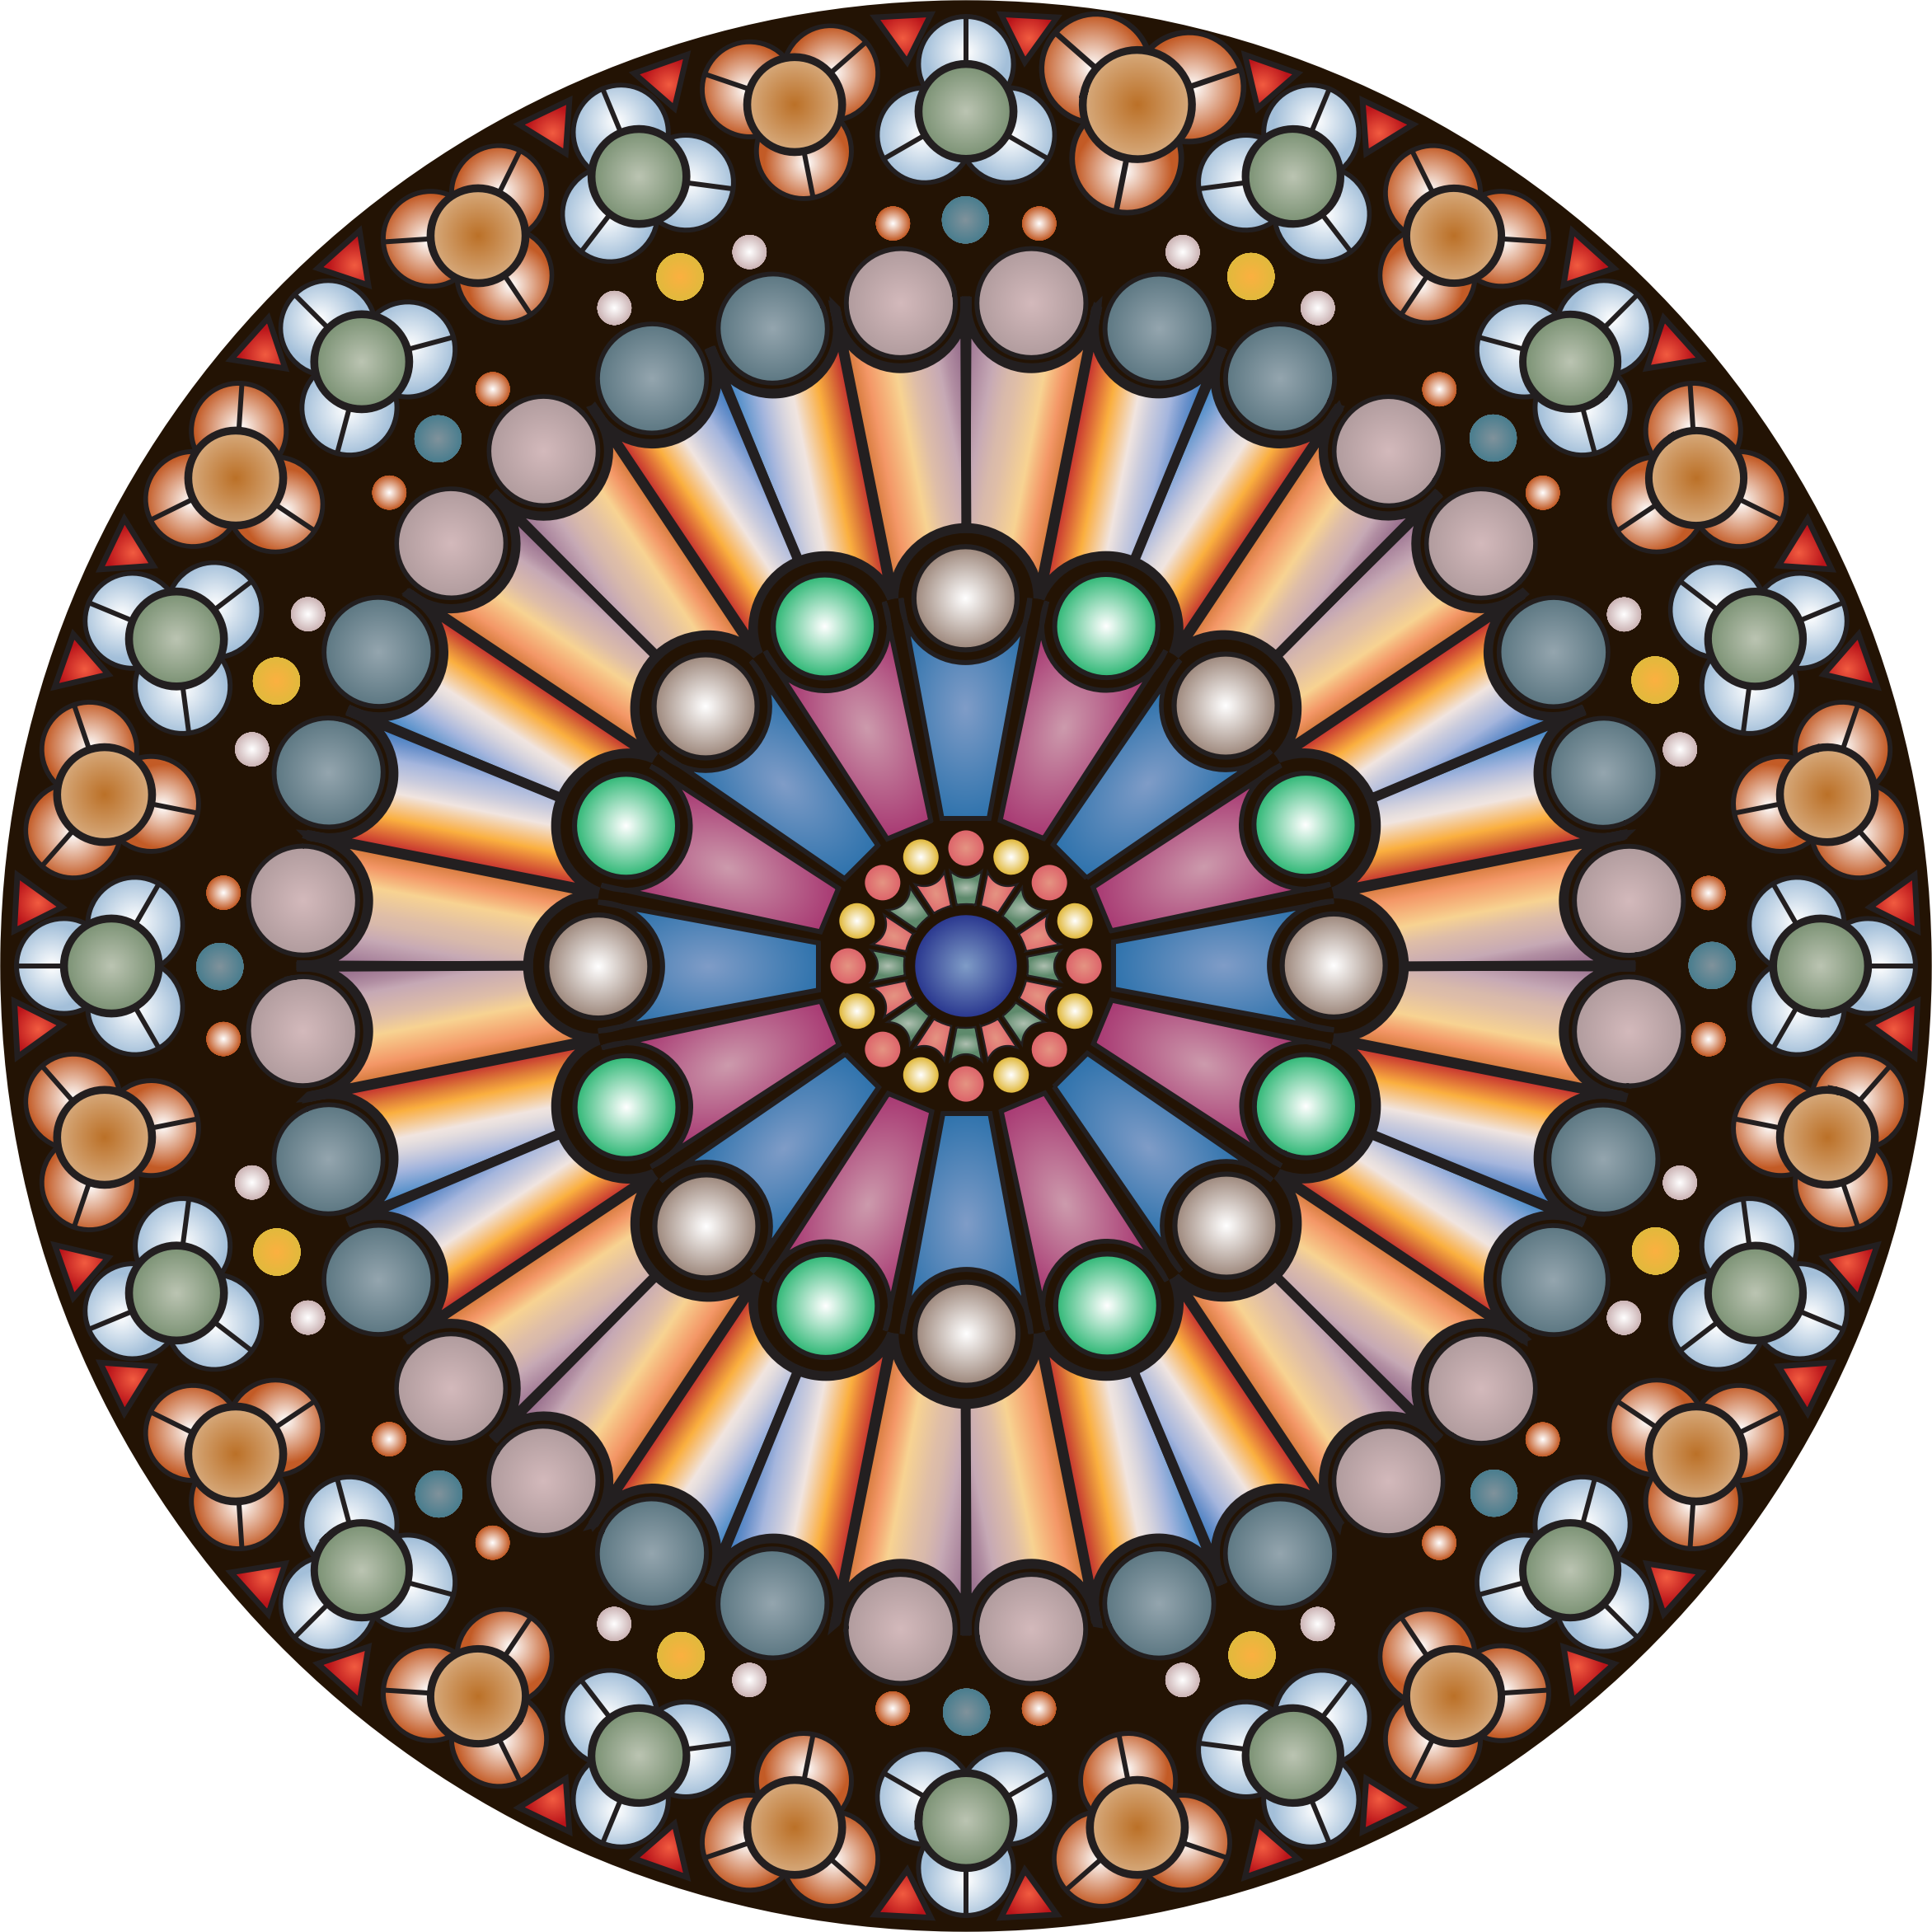 Rose Window - Notre Dame by bnsonger47